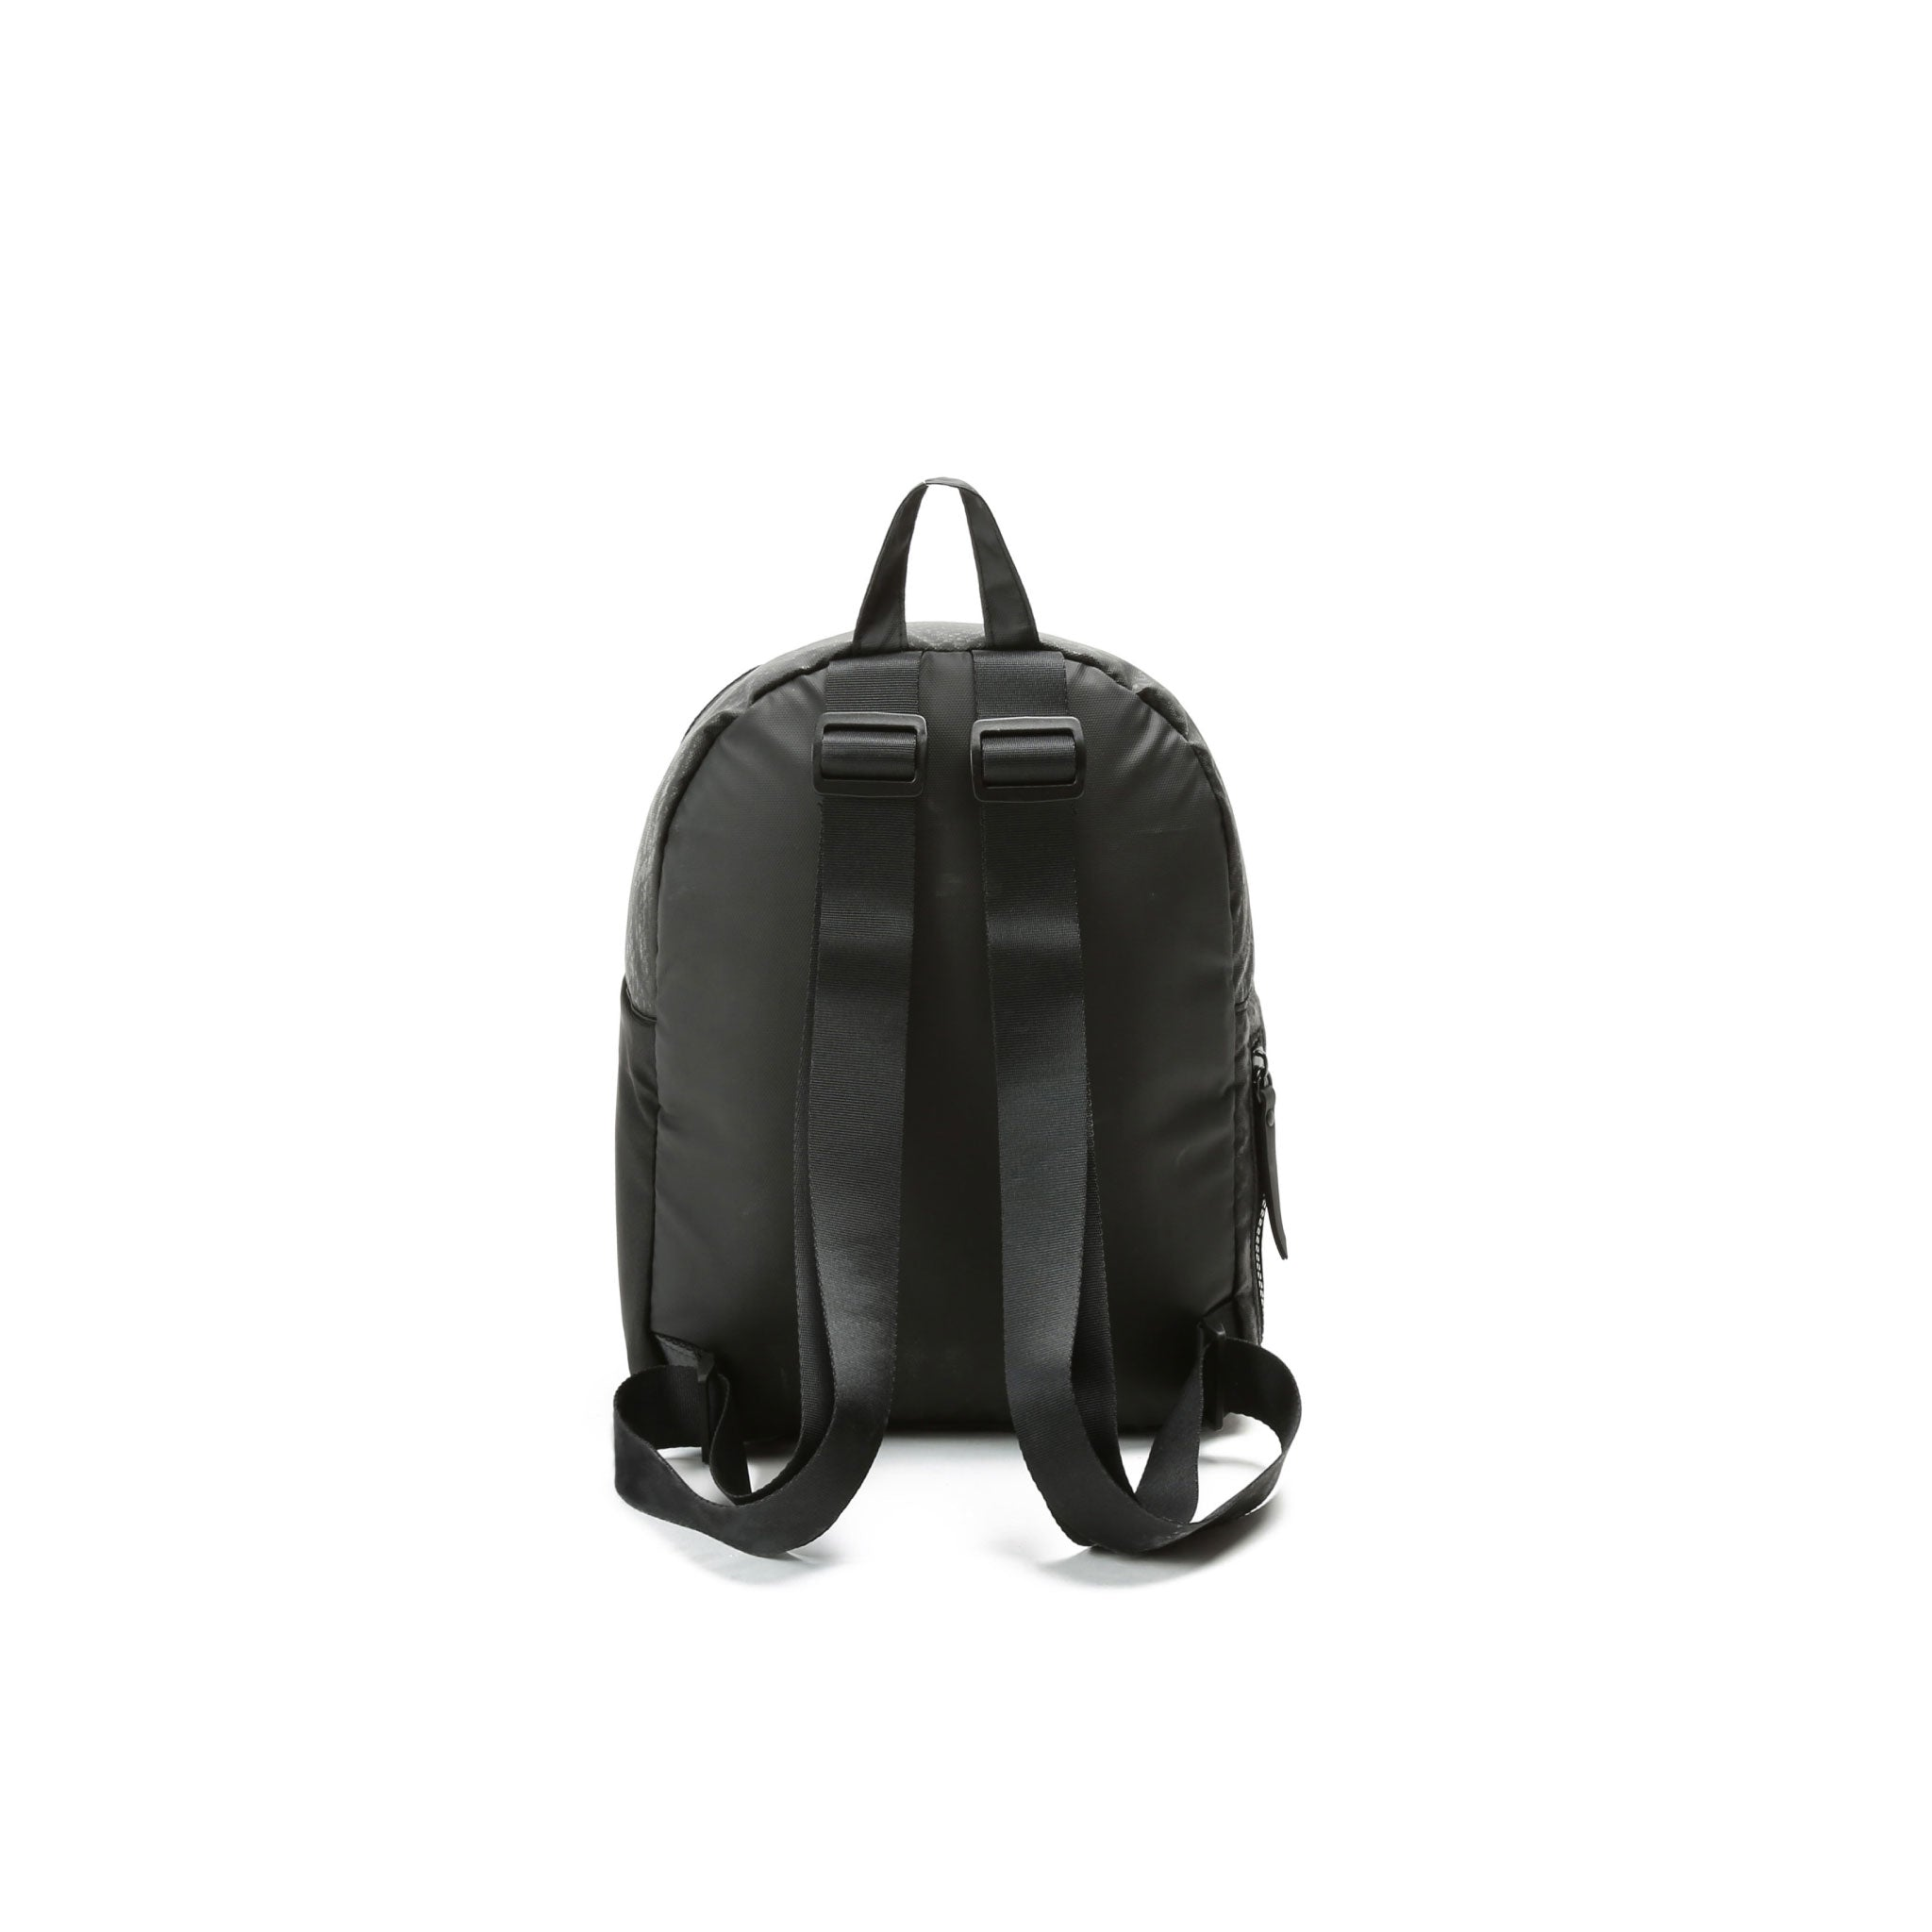 Lexi Mini Backpack, Black Snakeskin